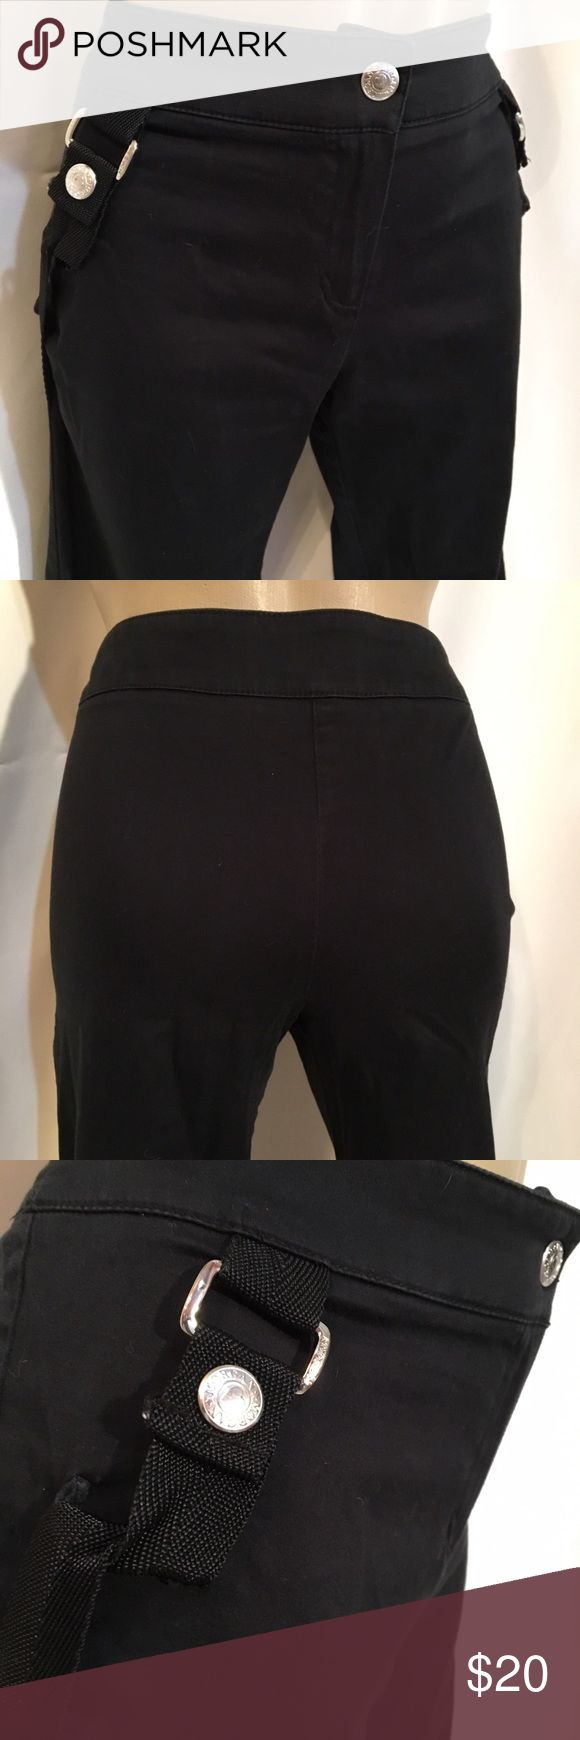 "Morgan De Toi Black Cargo Pants 6 VG pre owned: size and care tag removed.  Cotton/spandex blend.						Front zip & snap close. No pockets.			  31"" waist 										 40"" length 									 32"" inseam, 									 38"" hips Morgan De Toi Pants"